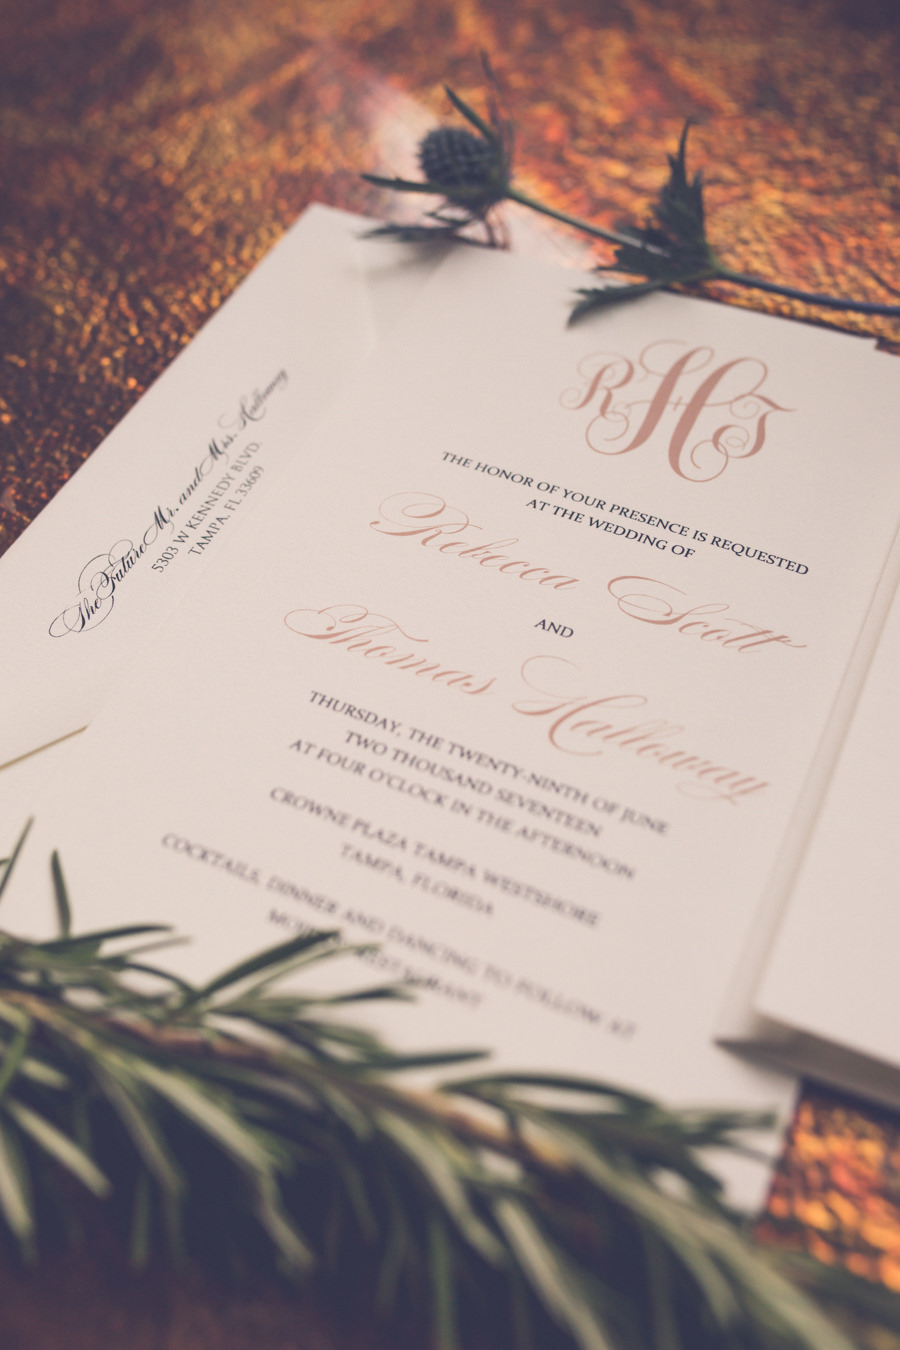 White and Elegant Dusty Rose Colored Printed Wedding Invitations Suite | Tampa Bay Wedding Invitation and Paper Goods Shop Invitation Galleria